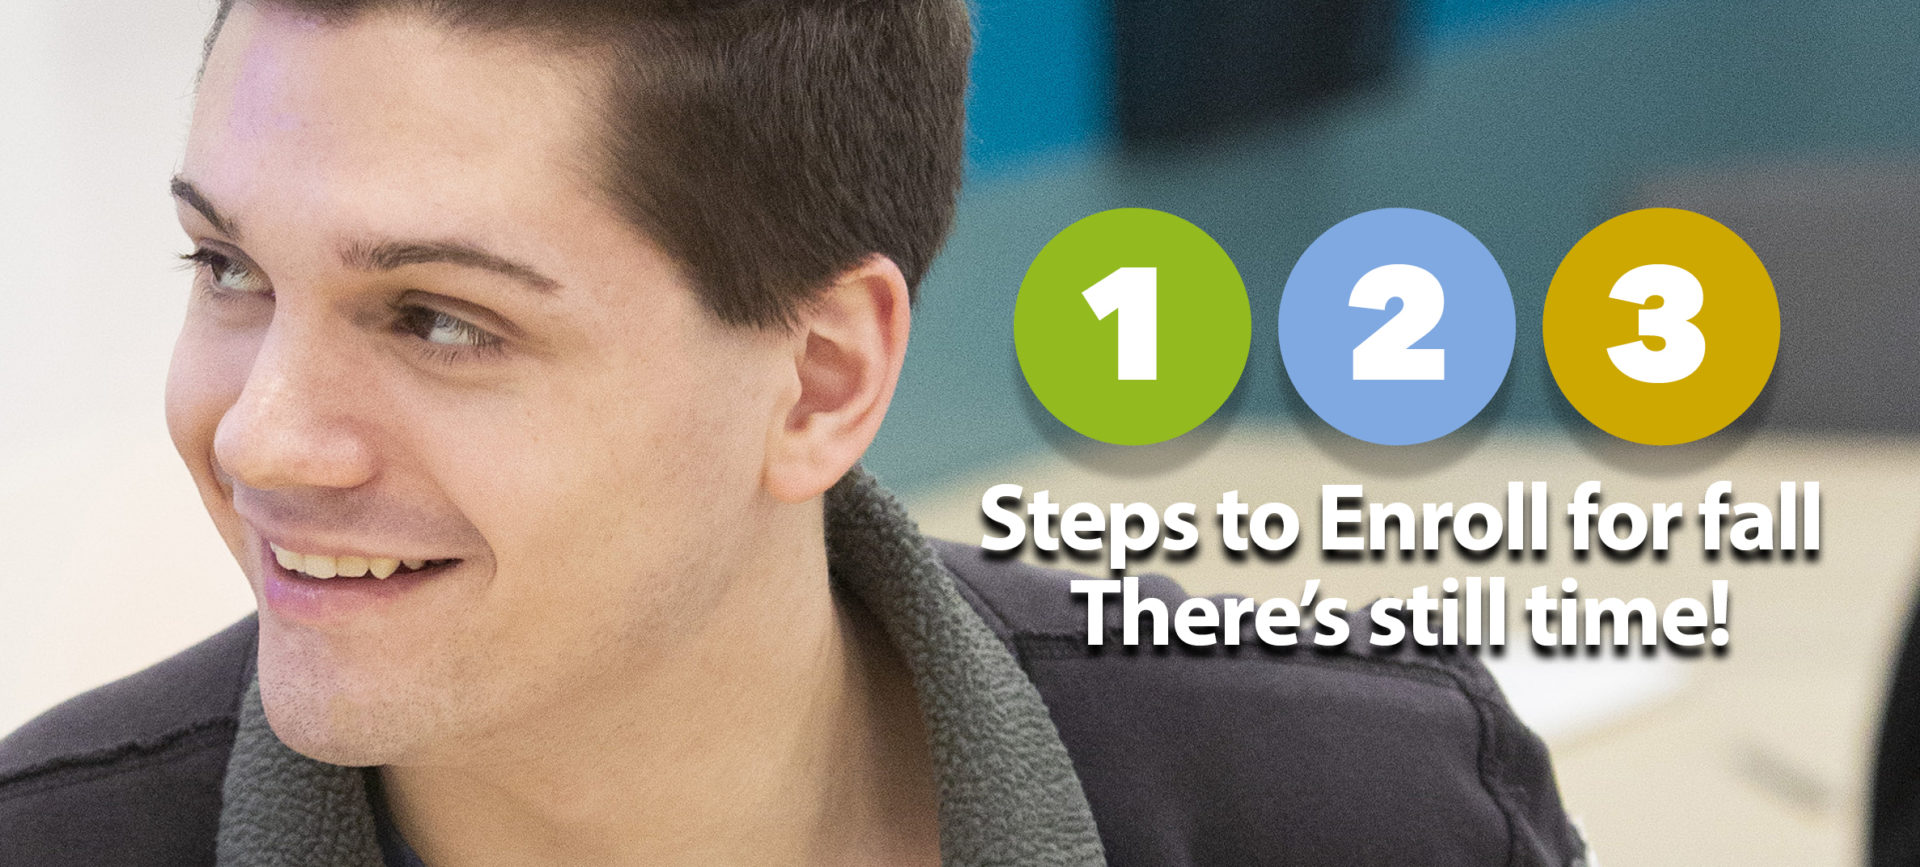 1, 2, 3 Steps to enroll for fall, there's still time!